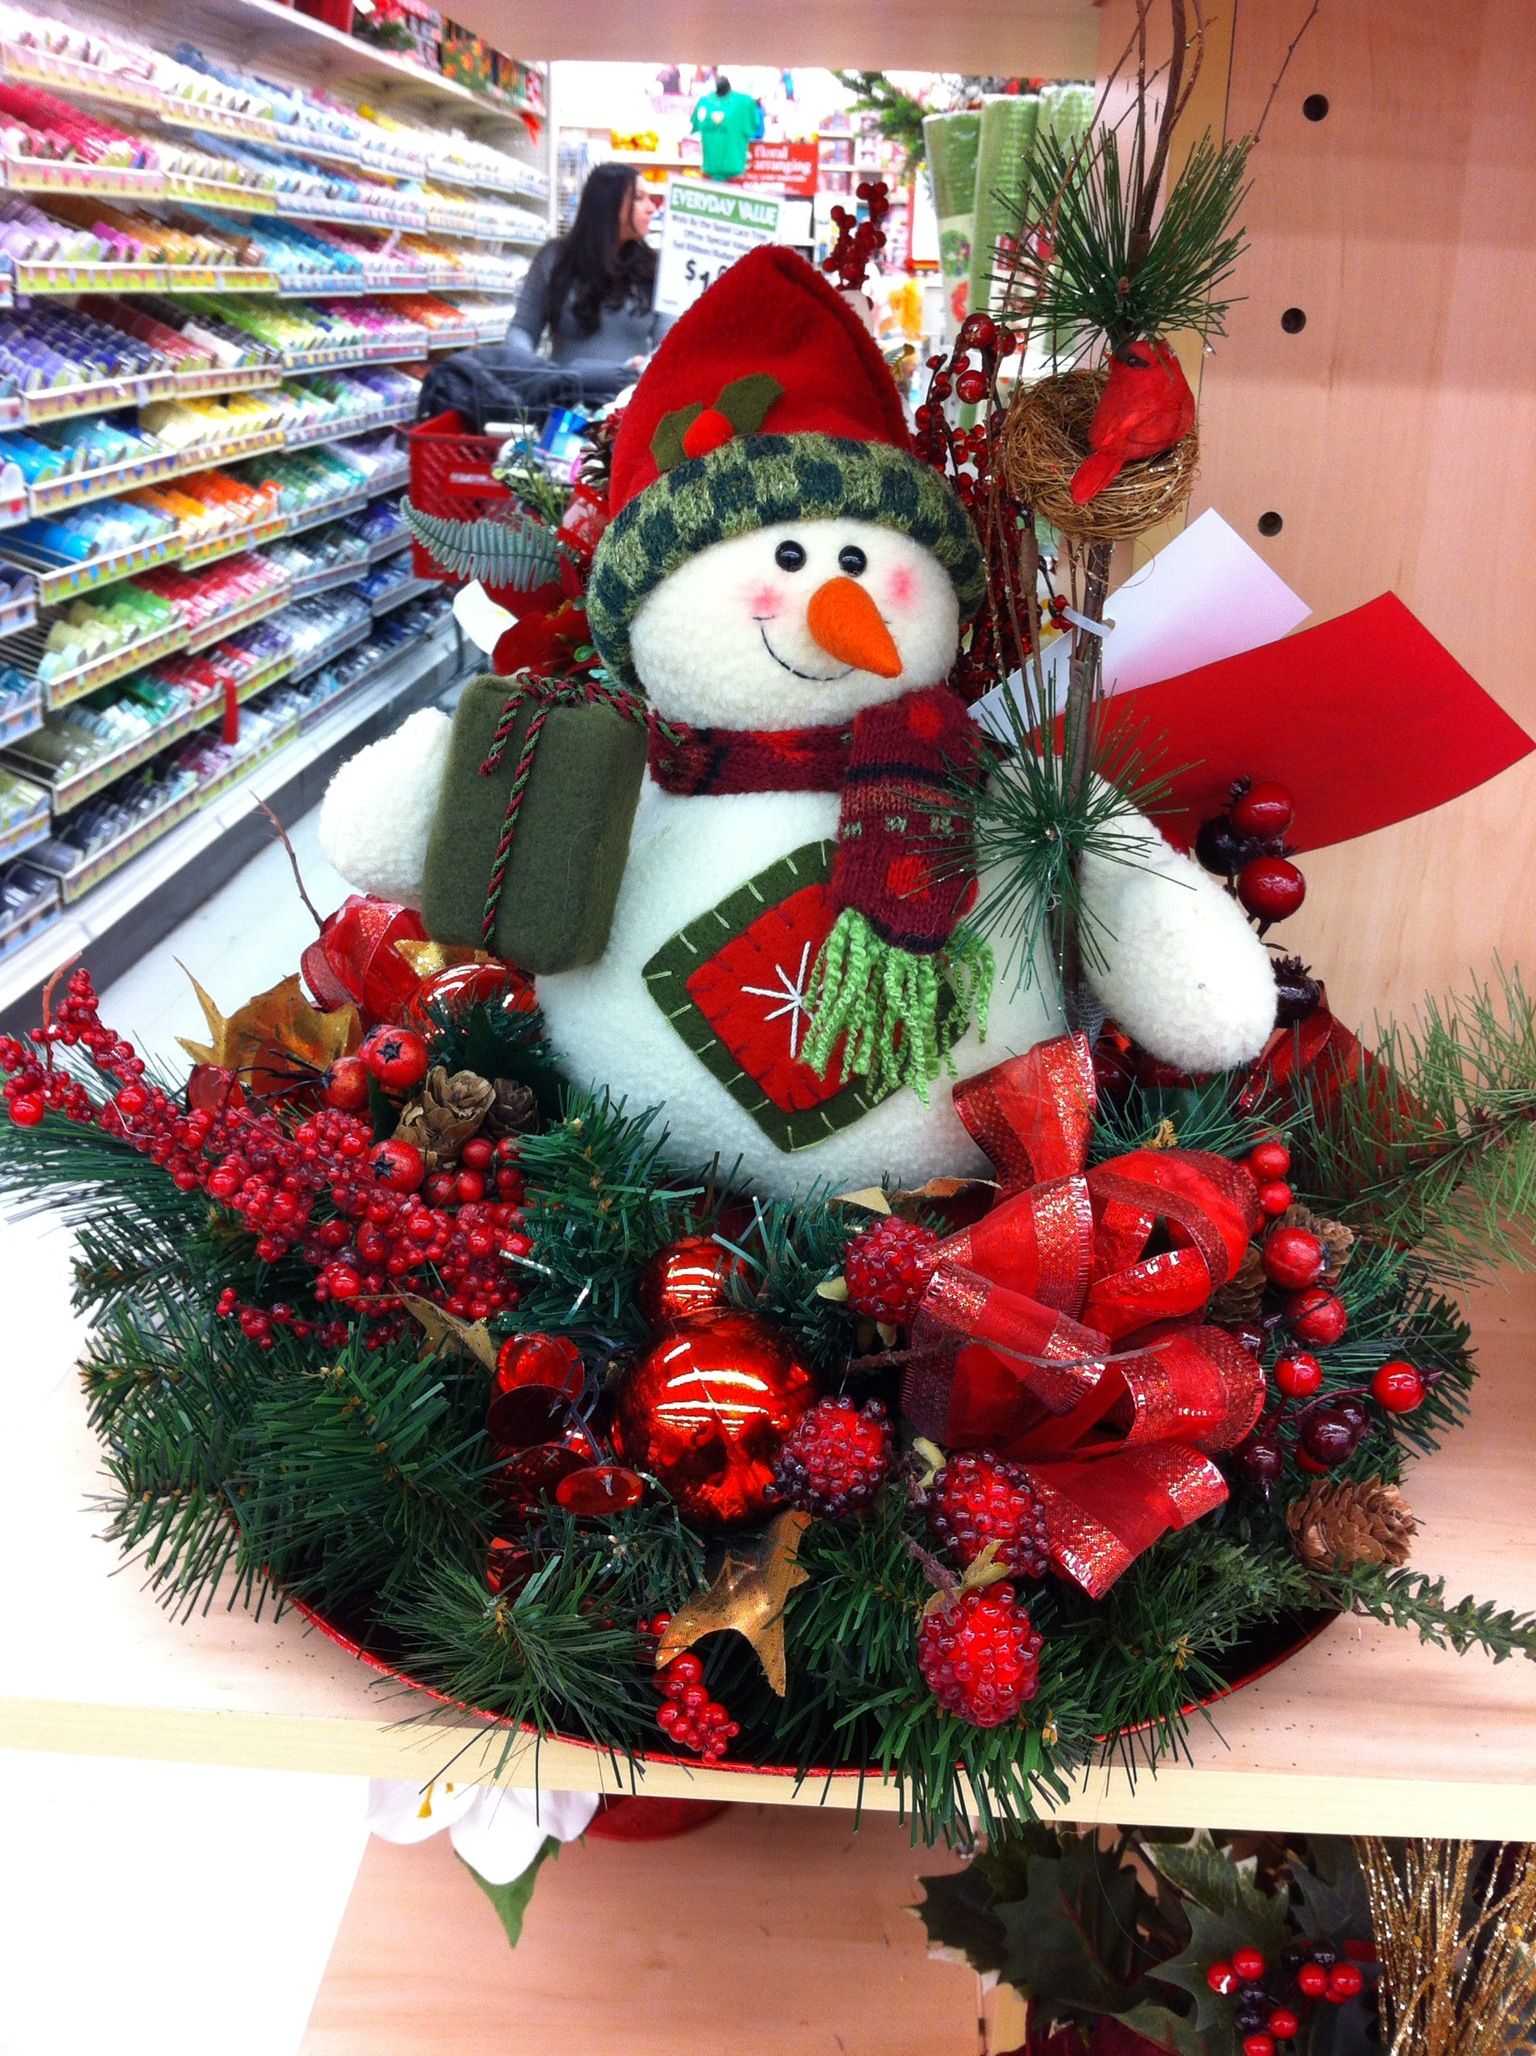 Snowman holiday centerpiece a c moore shrewsbury nj